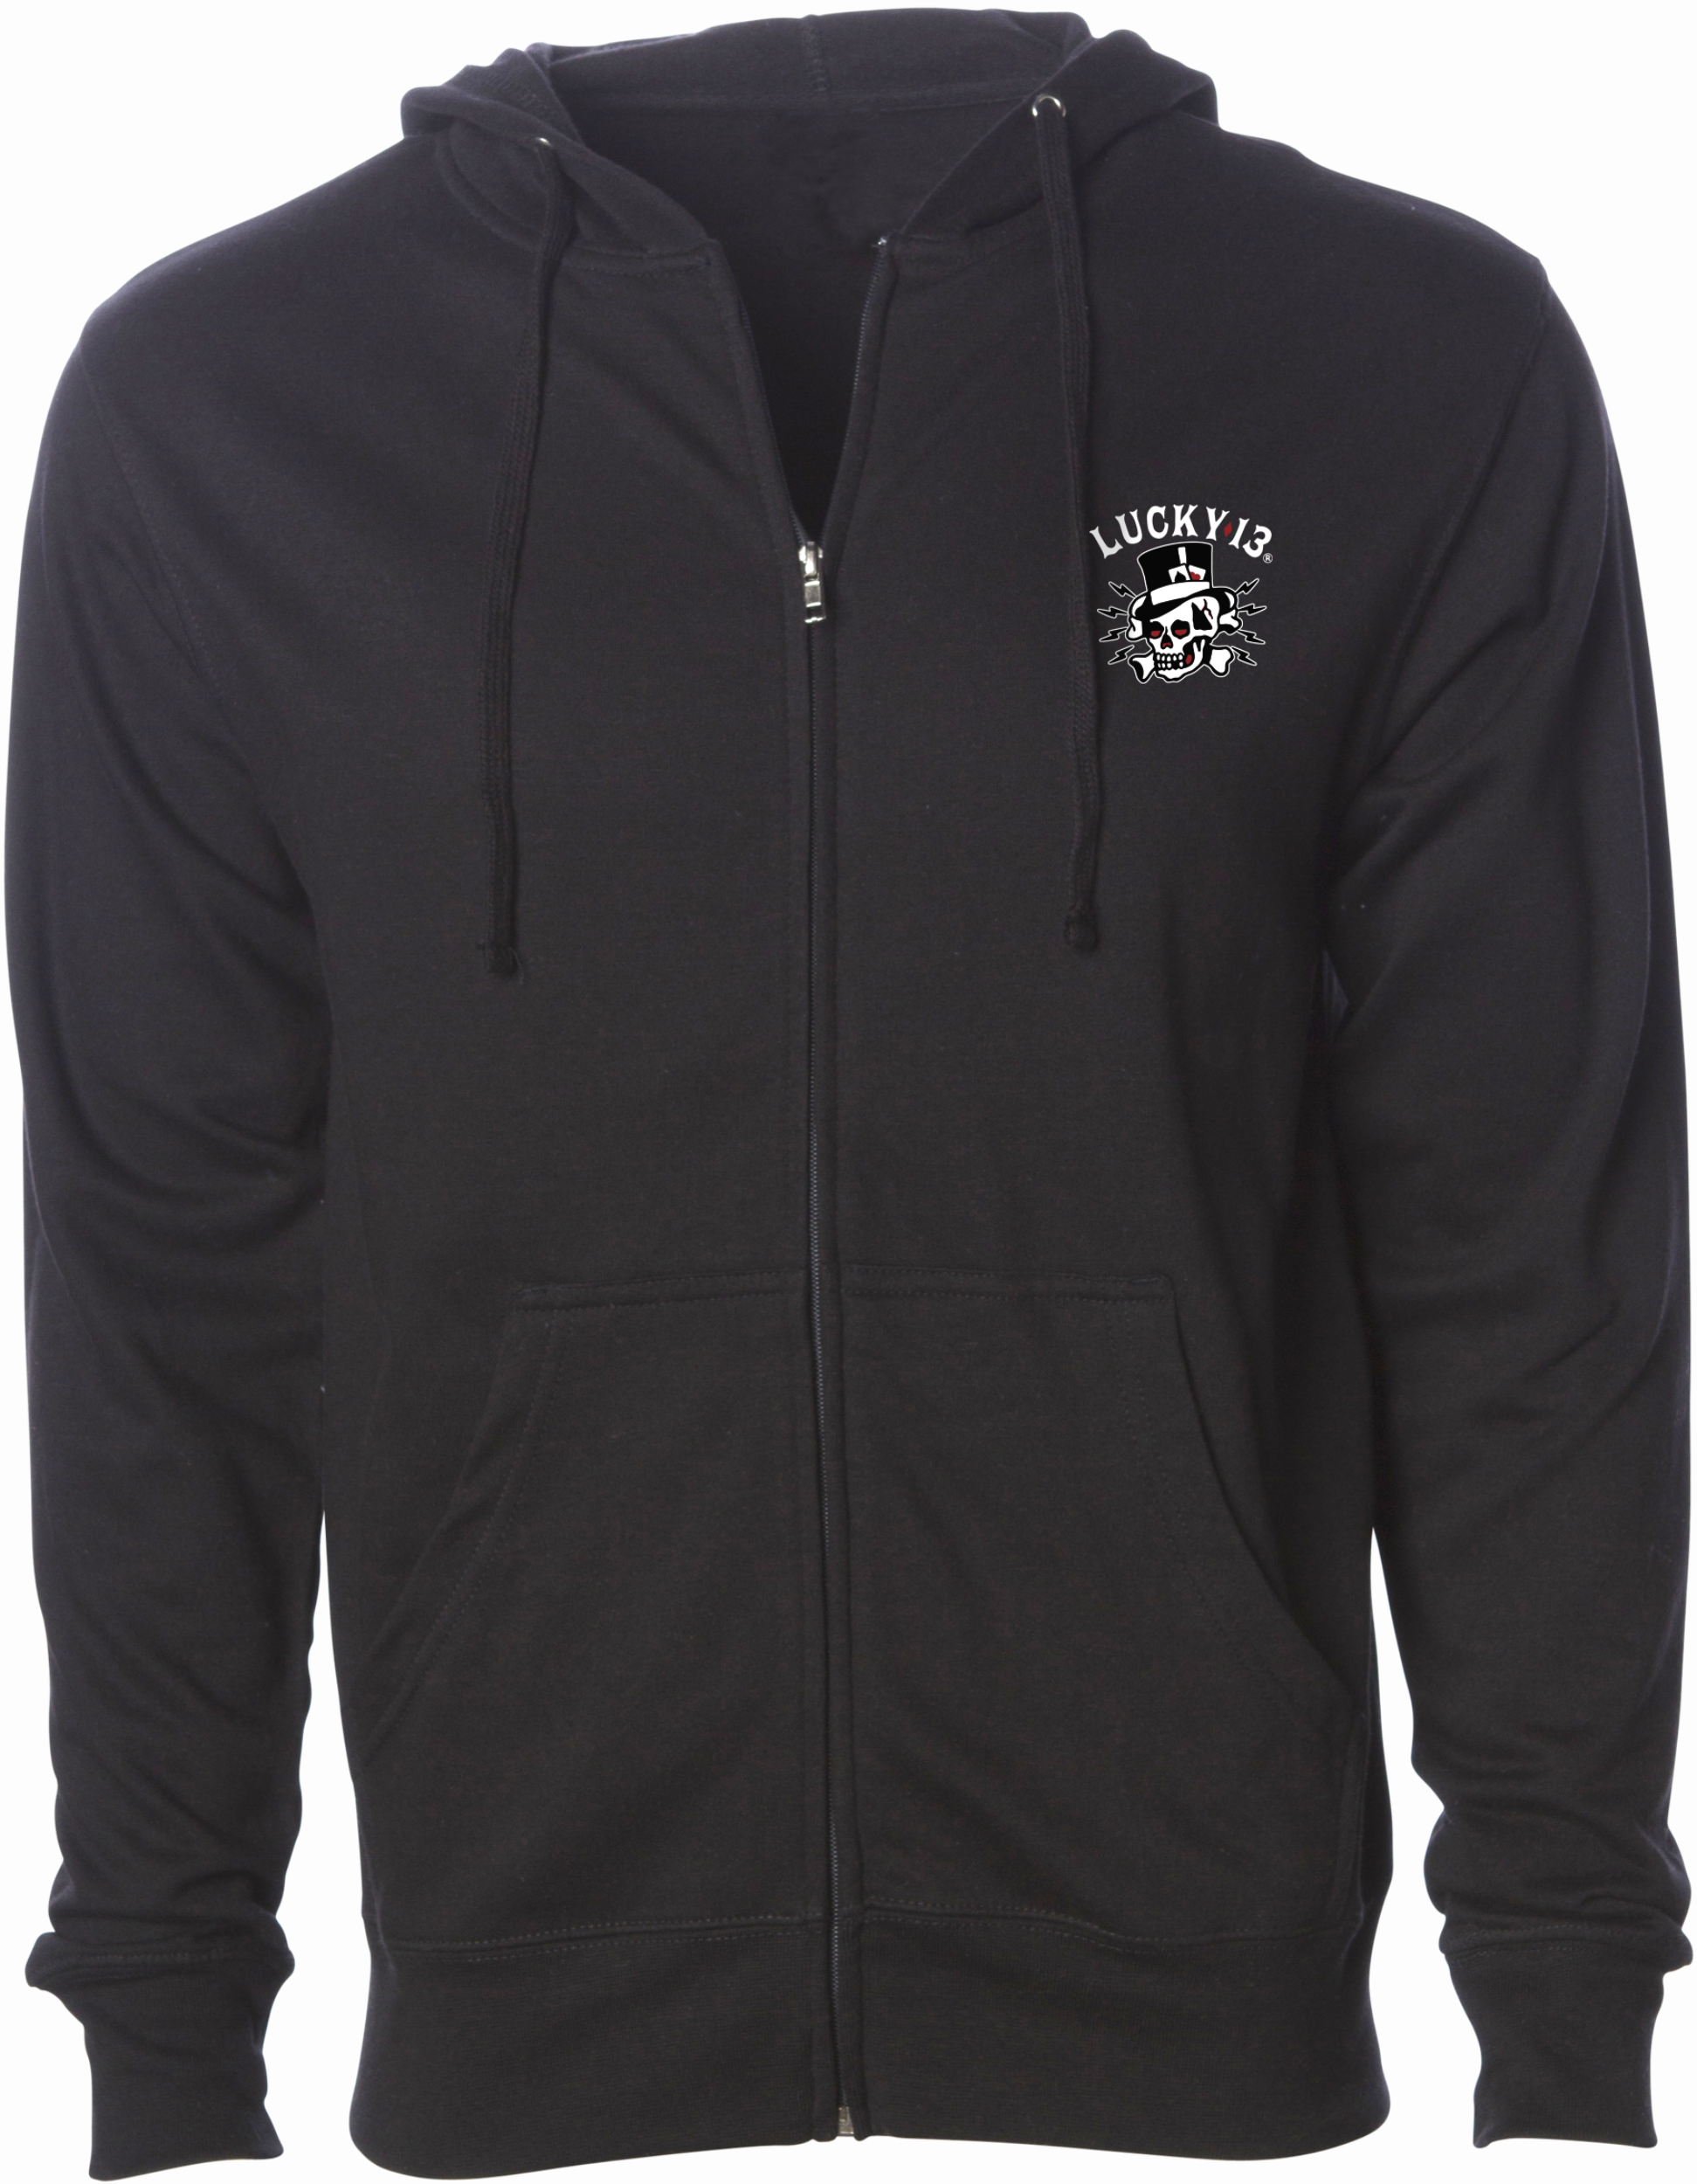 The DEATH OR GLORY Men's Full Zip Hooded Sweatshirt